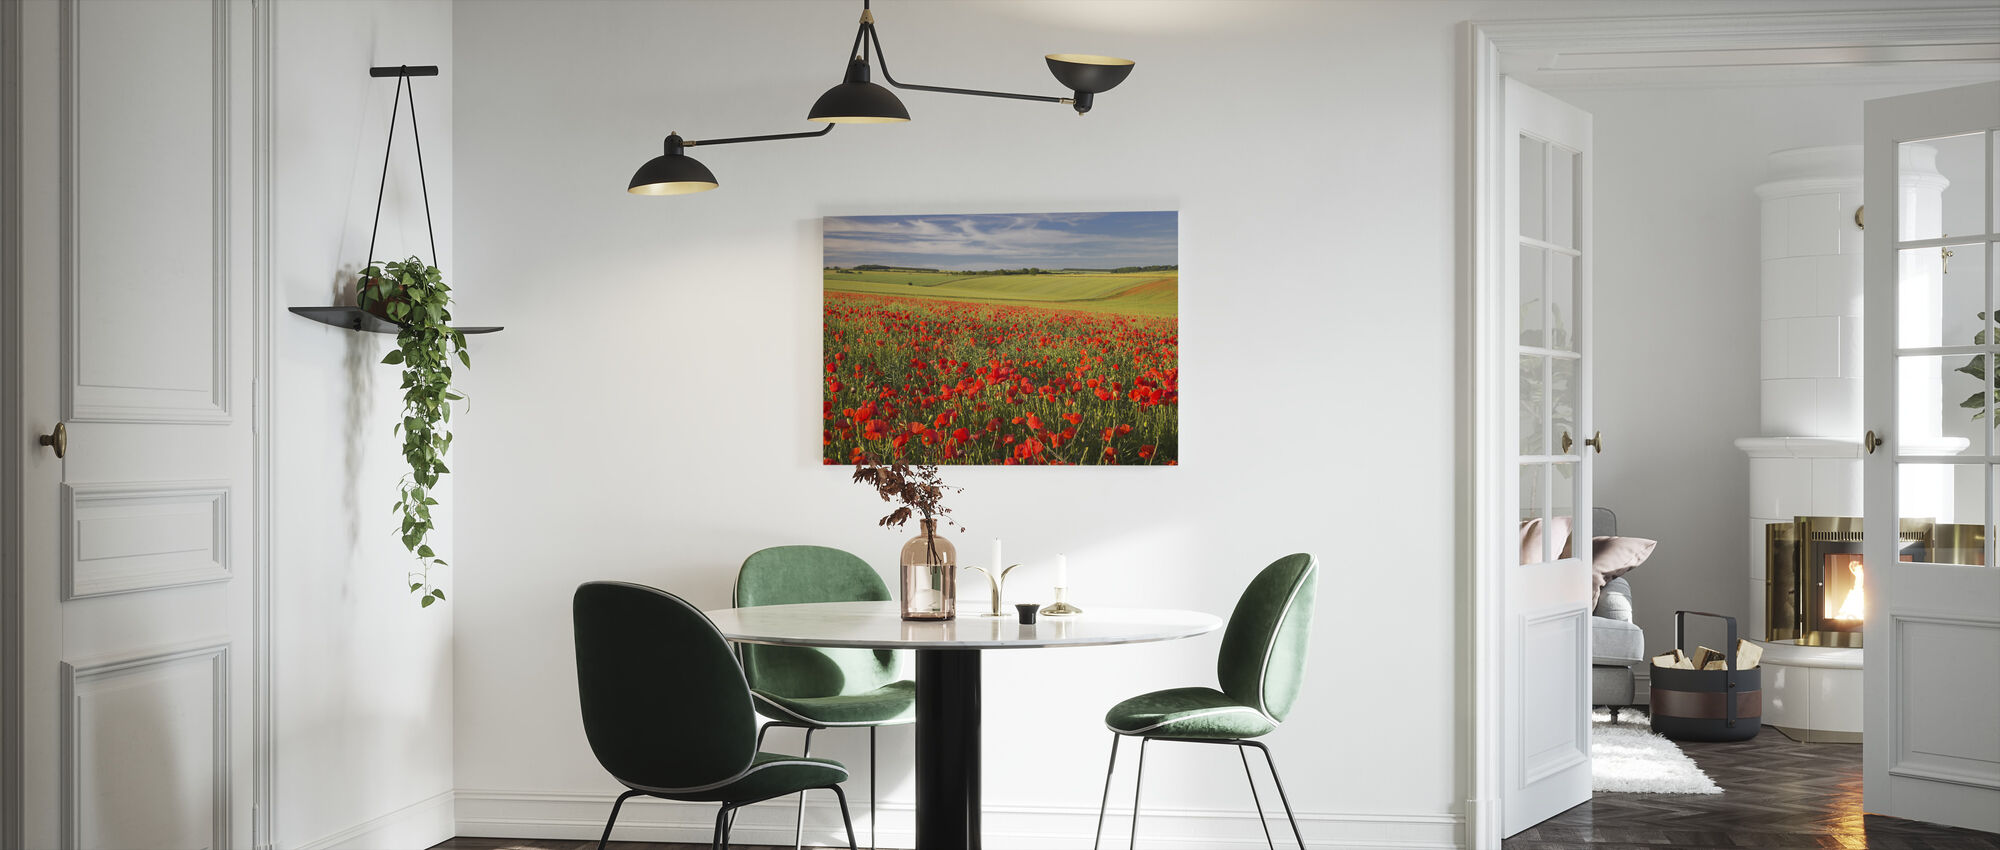 Sea of Poppies - Canvas print - Kitchen